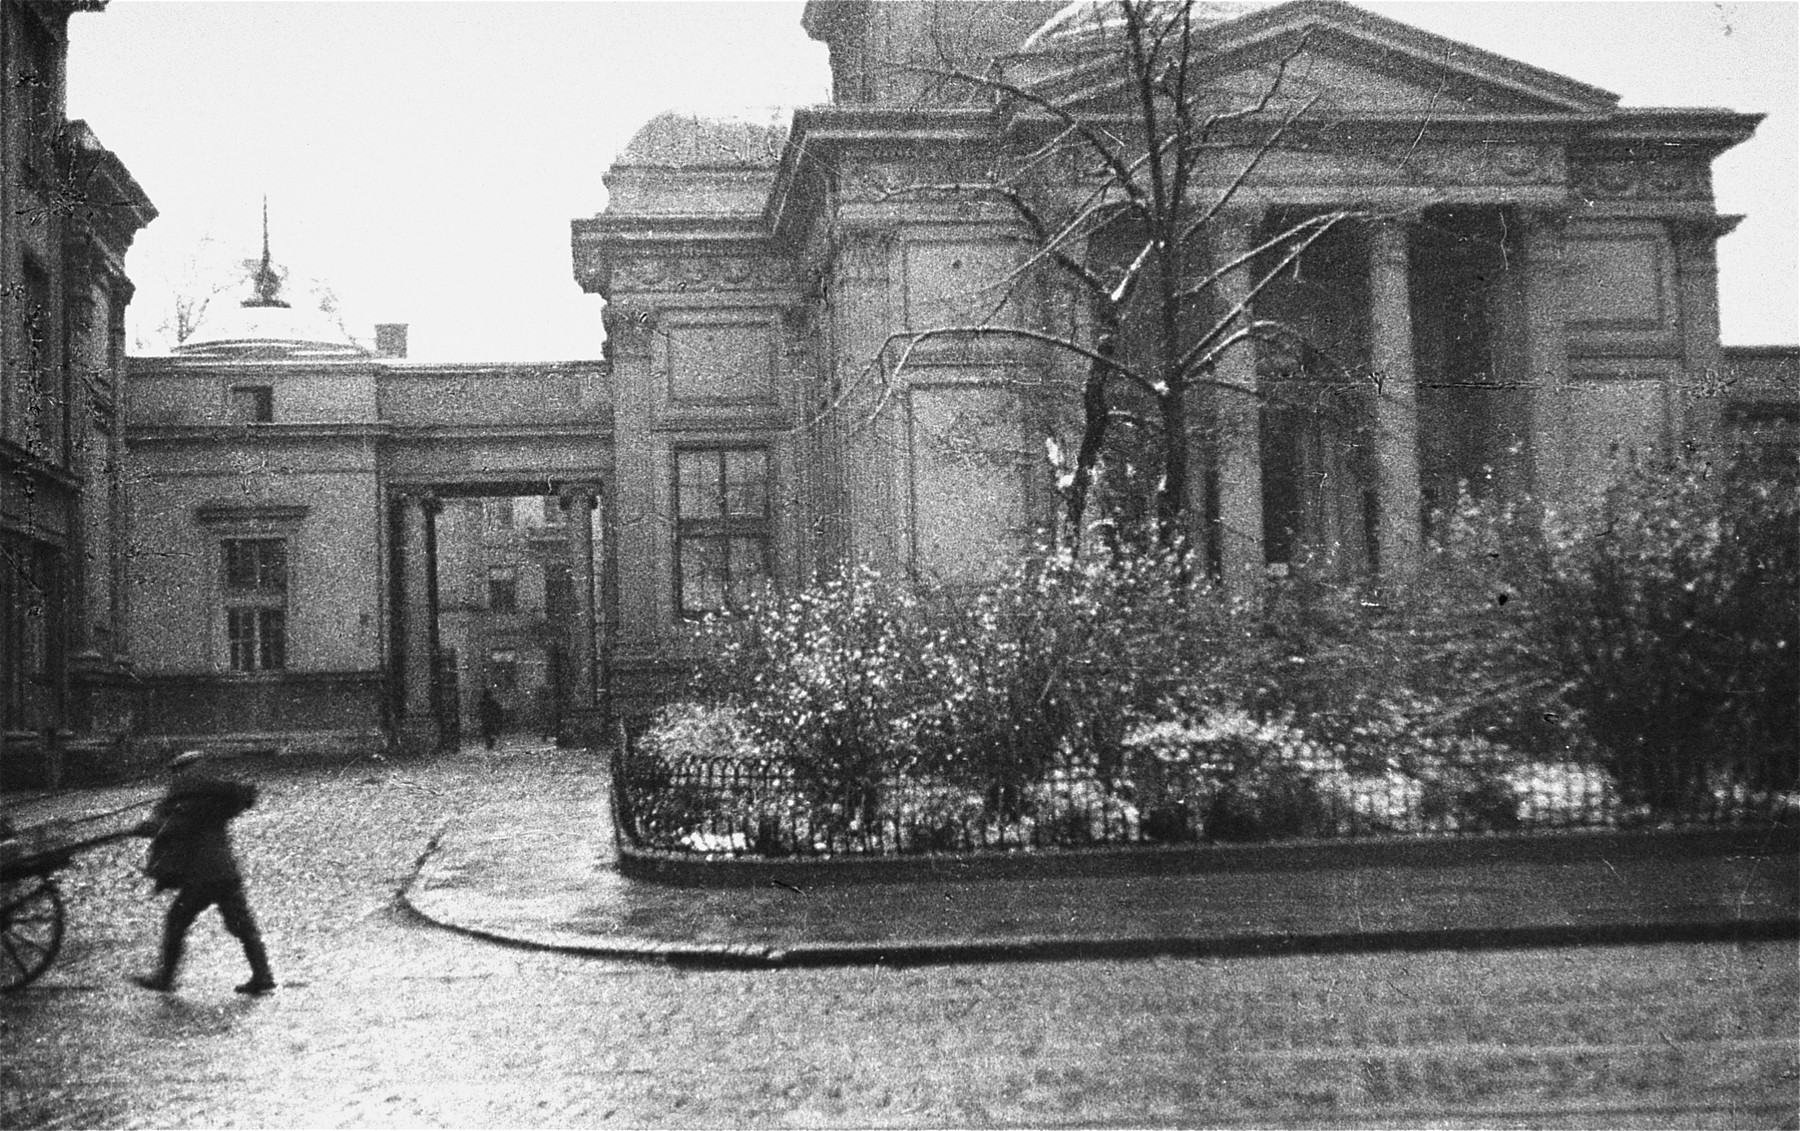 View of the Great Synagogue on Tlomackie Street in Warsaw, destroyed by the Germans in May 1943.   The photographer took this picture in March 1943, just before the Warsaw ghetto uprising.